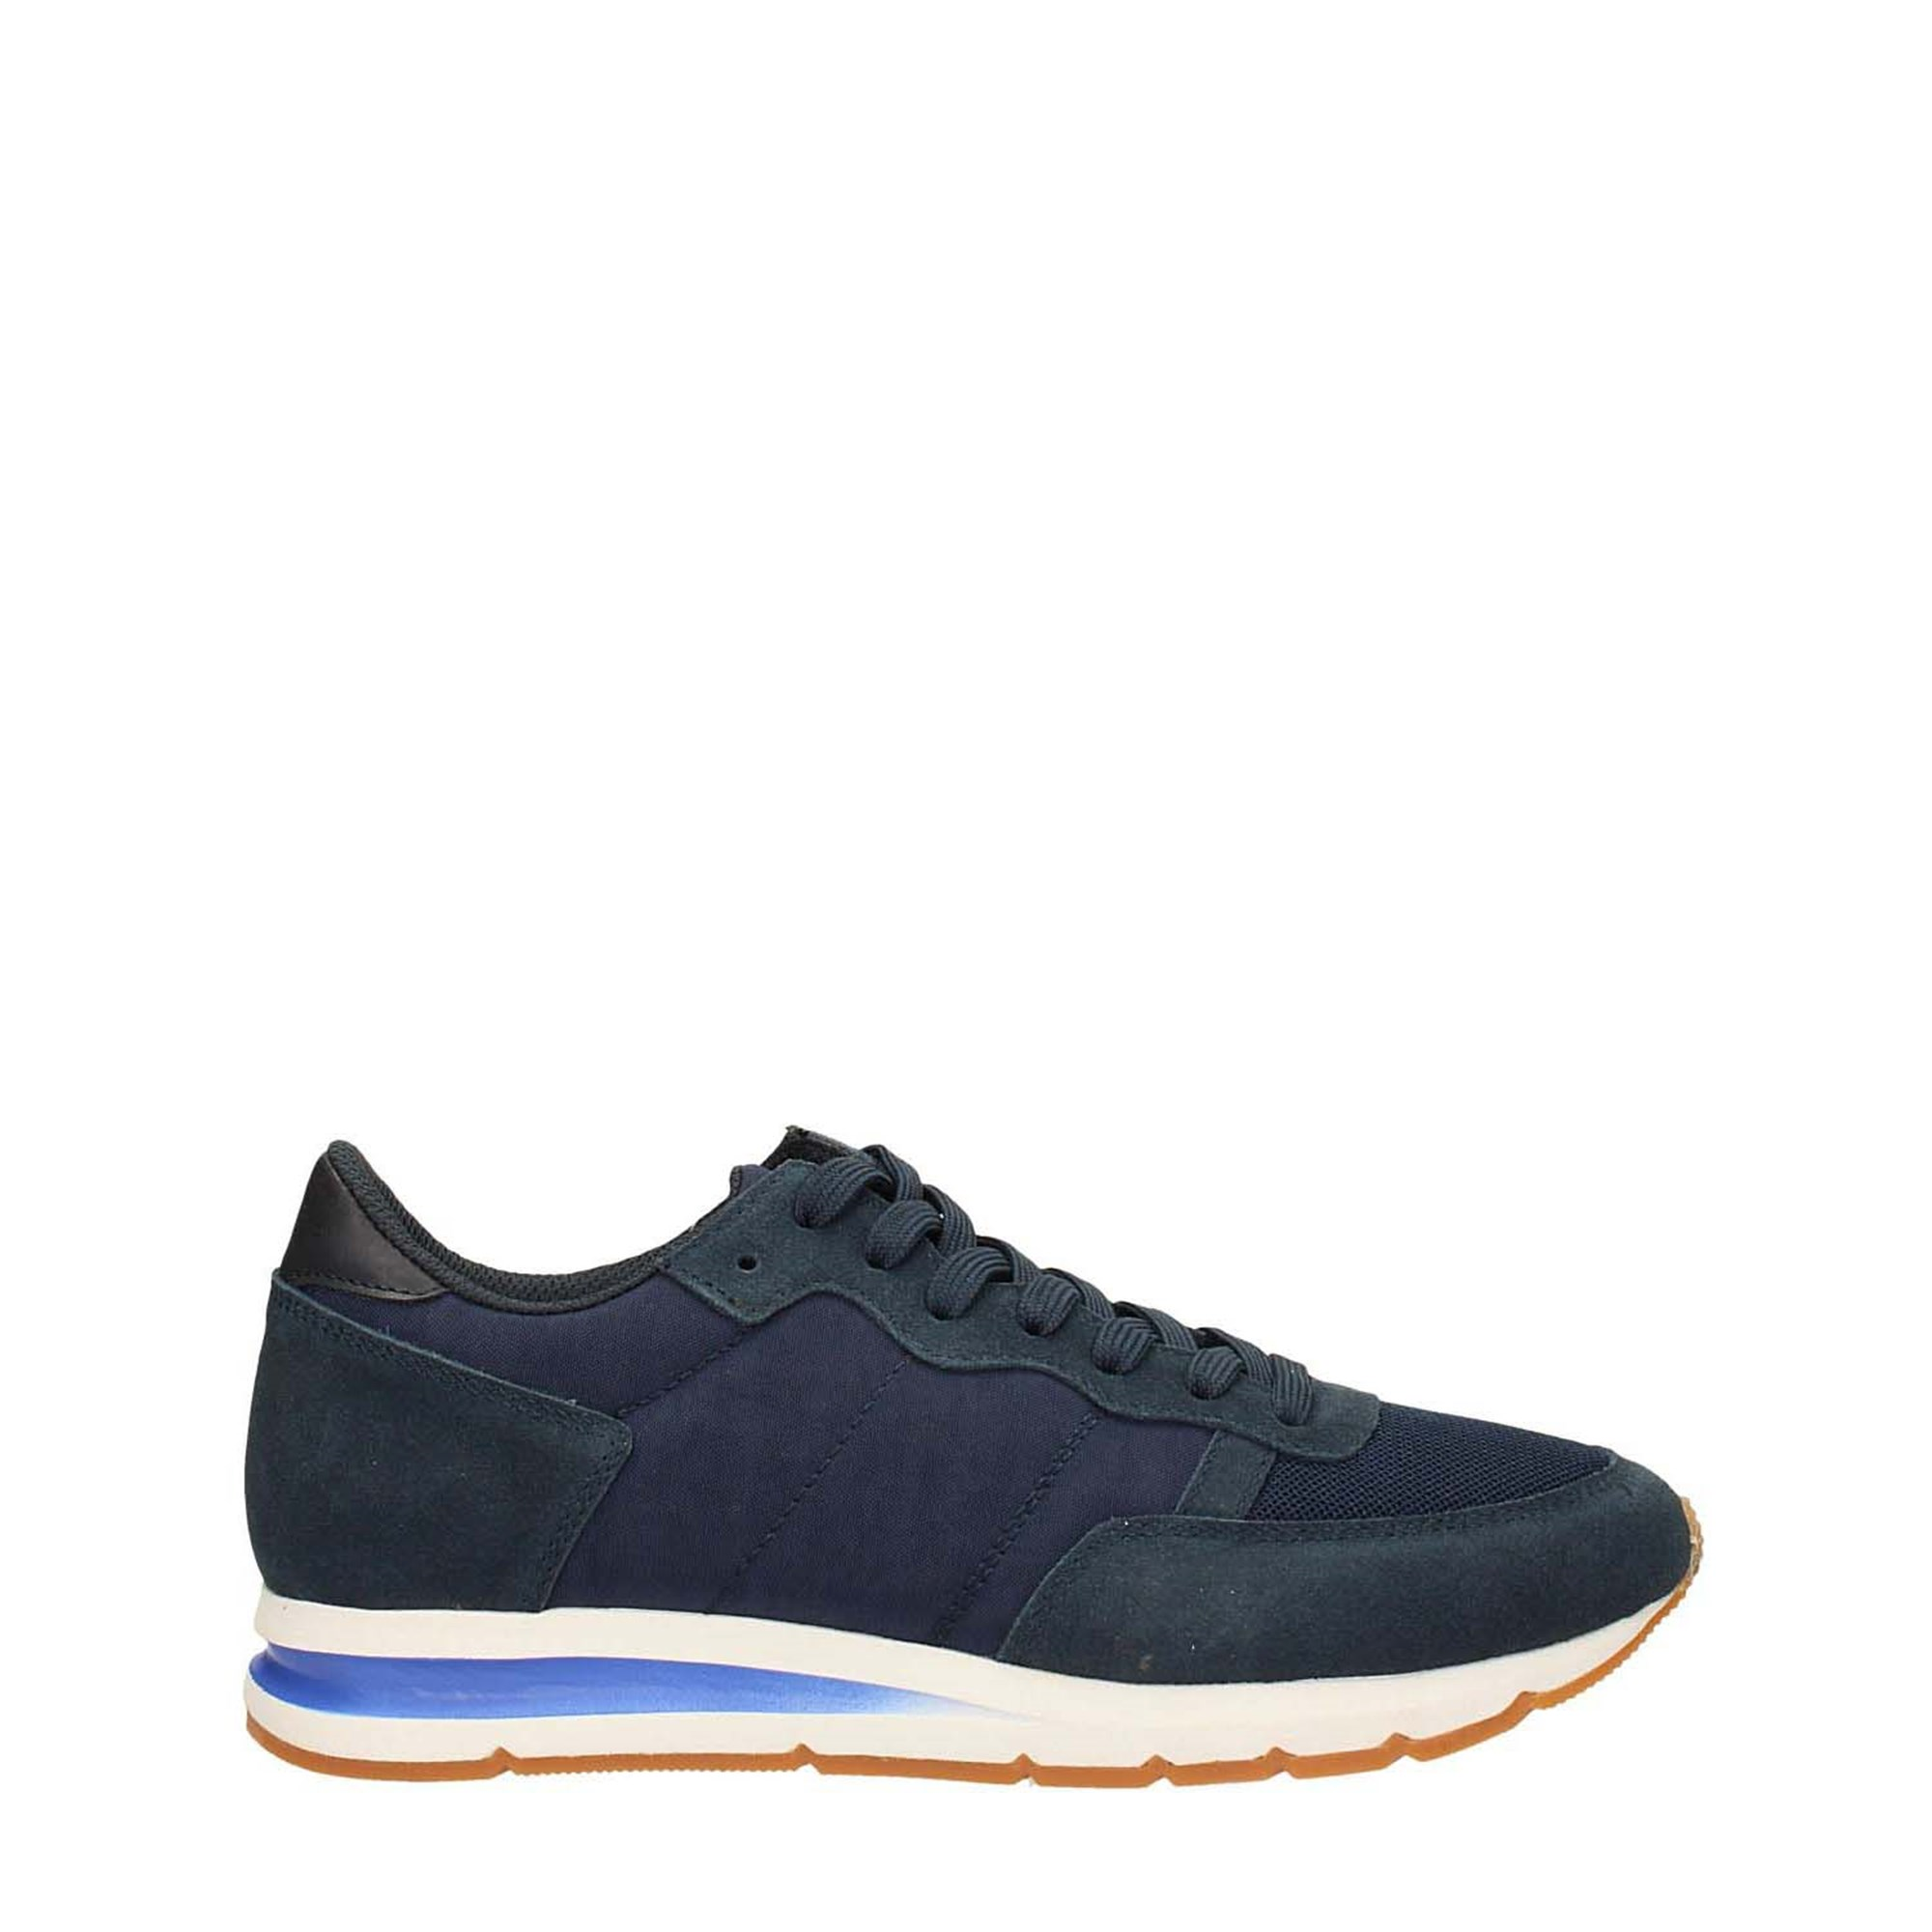 Tata Italia Shoes Man Sneakers KMS8130